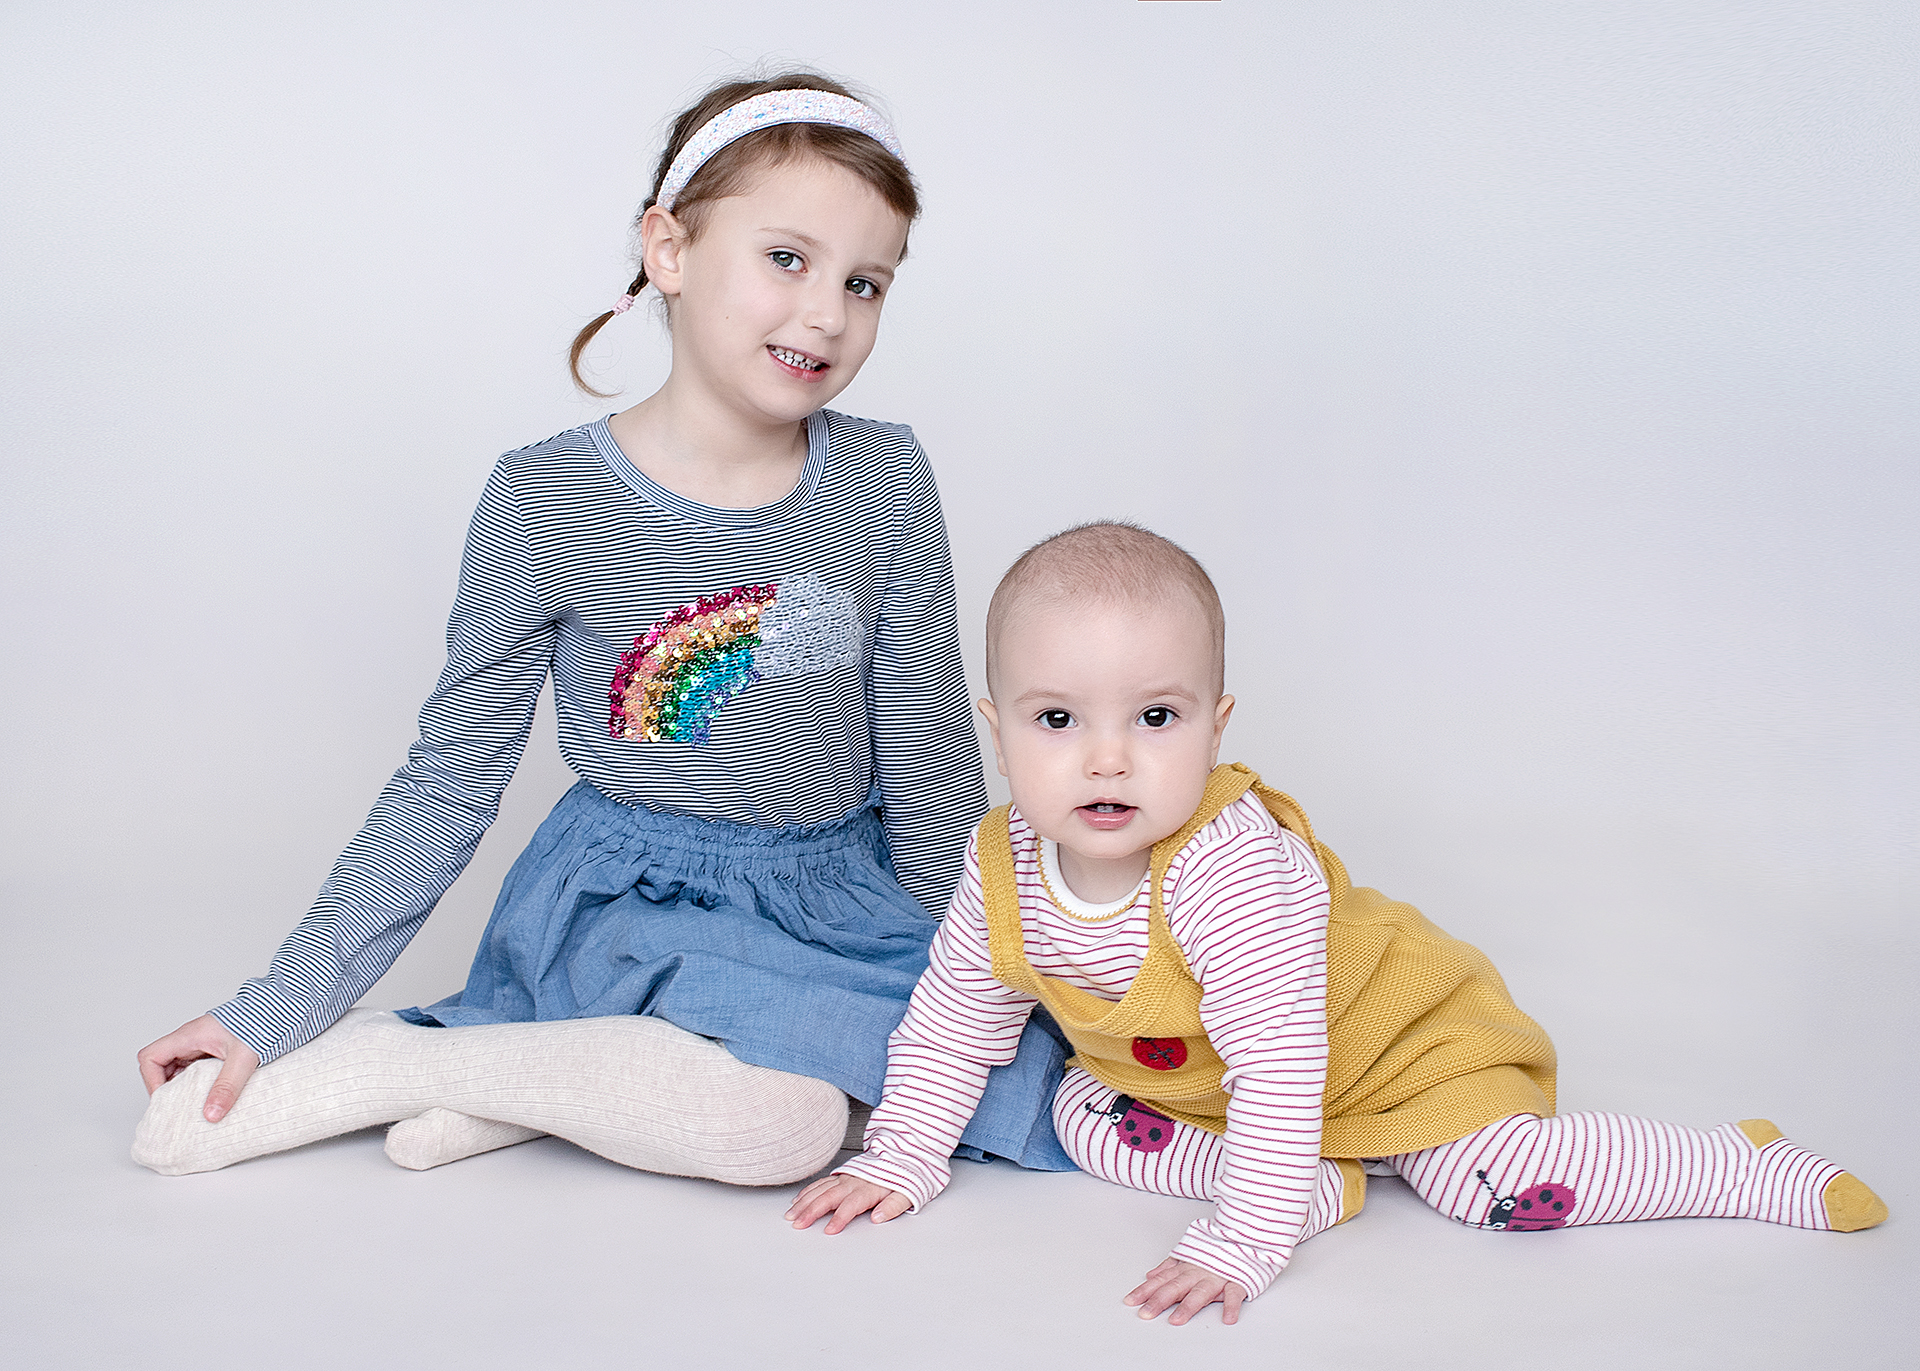 Older sister with younger sister together